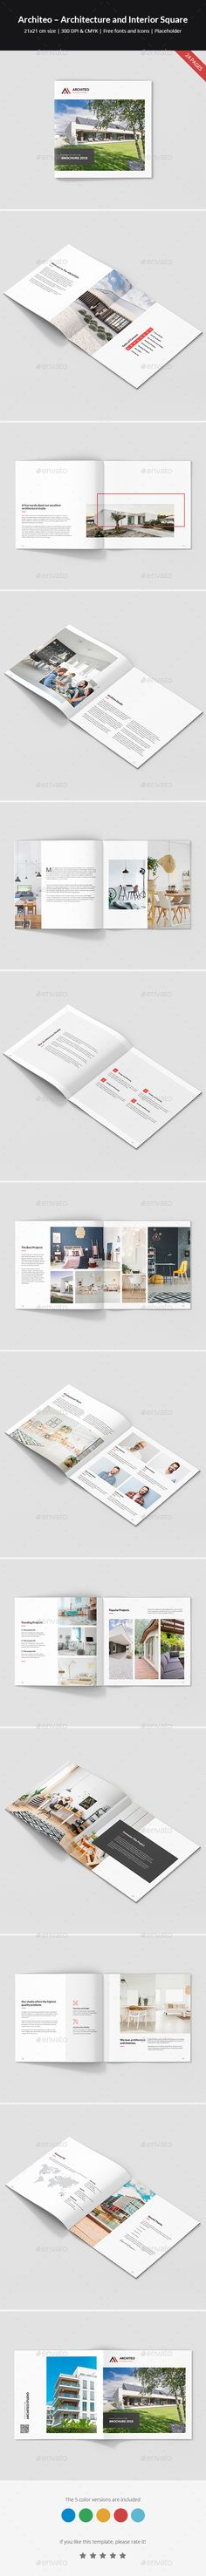 Architeo – Architecture and Interior Square Brochure Template InDesign INDD